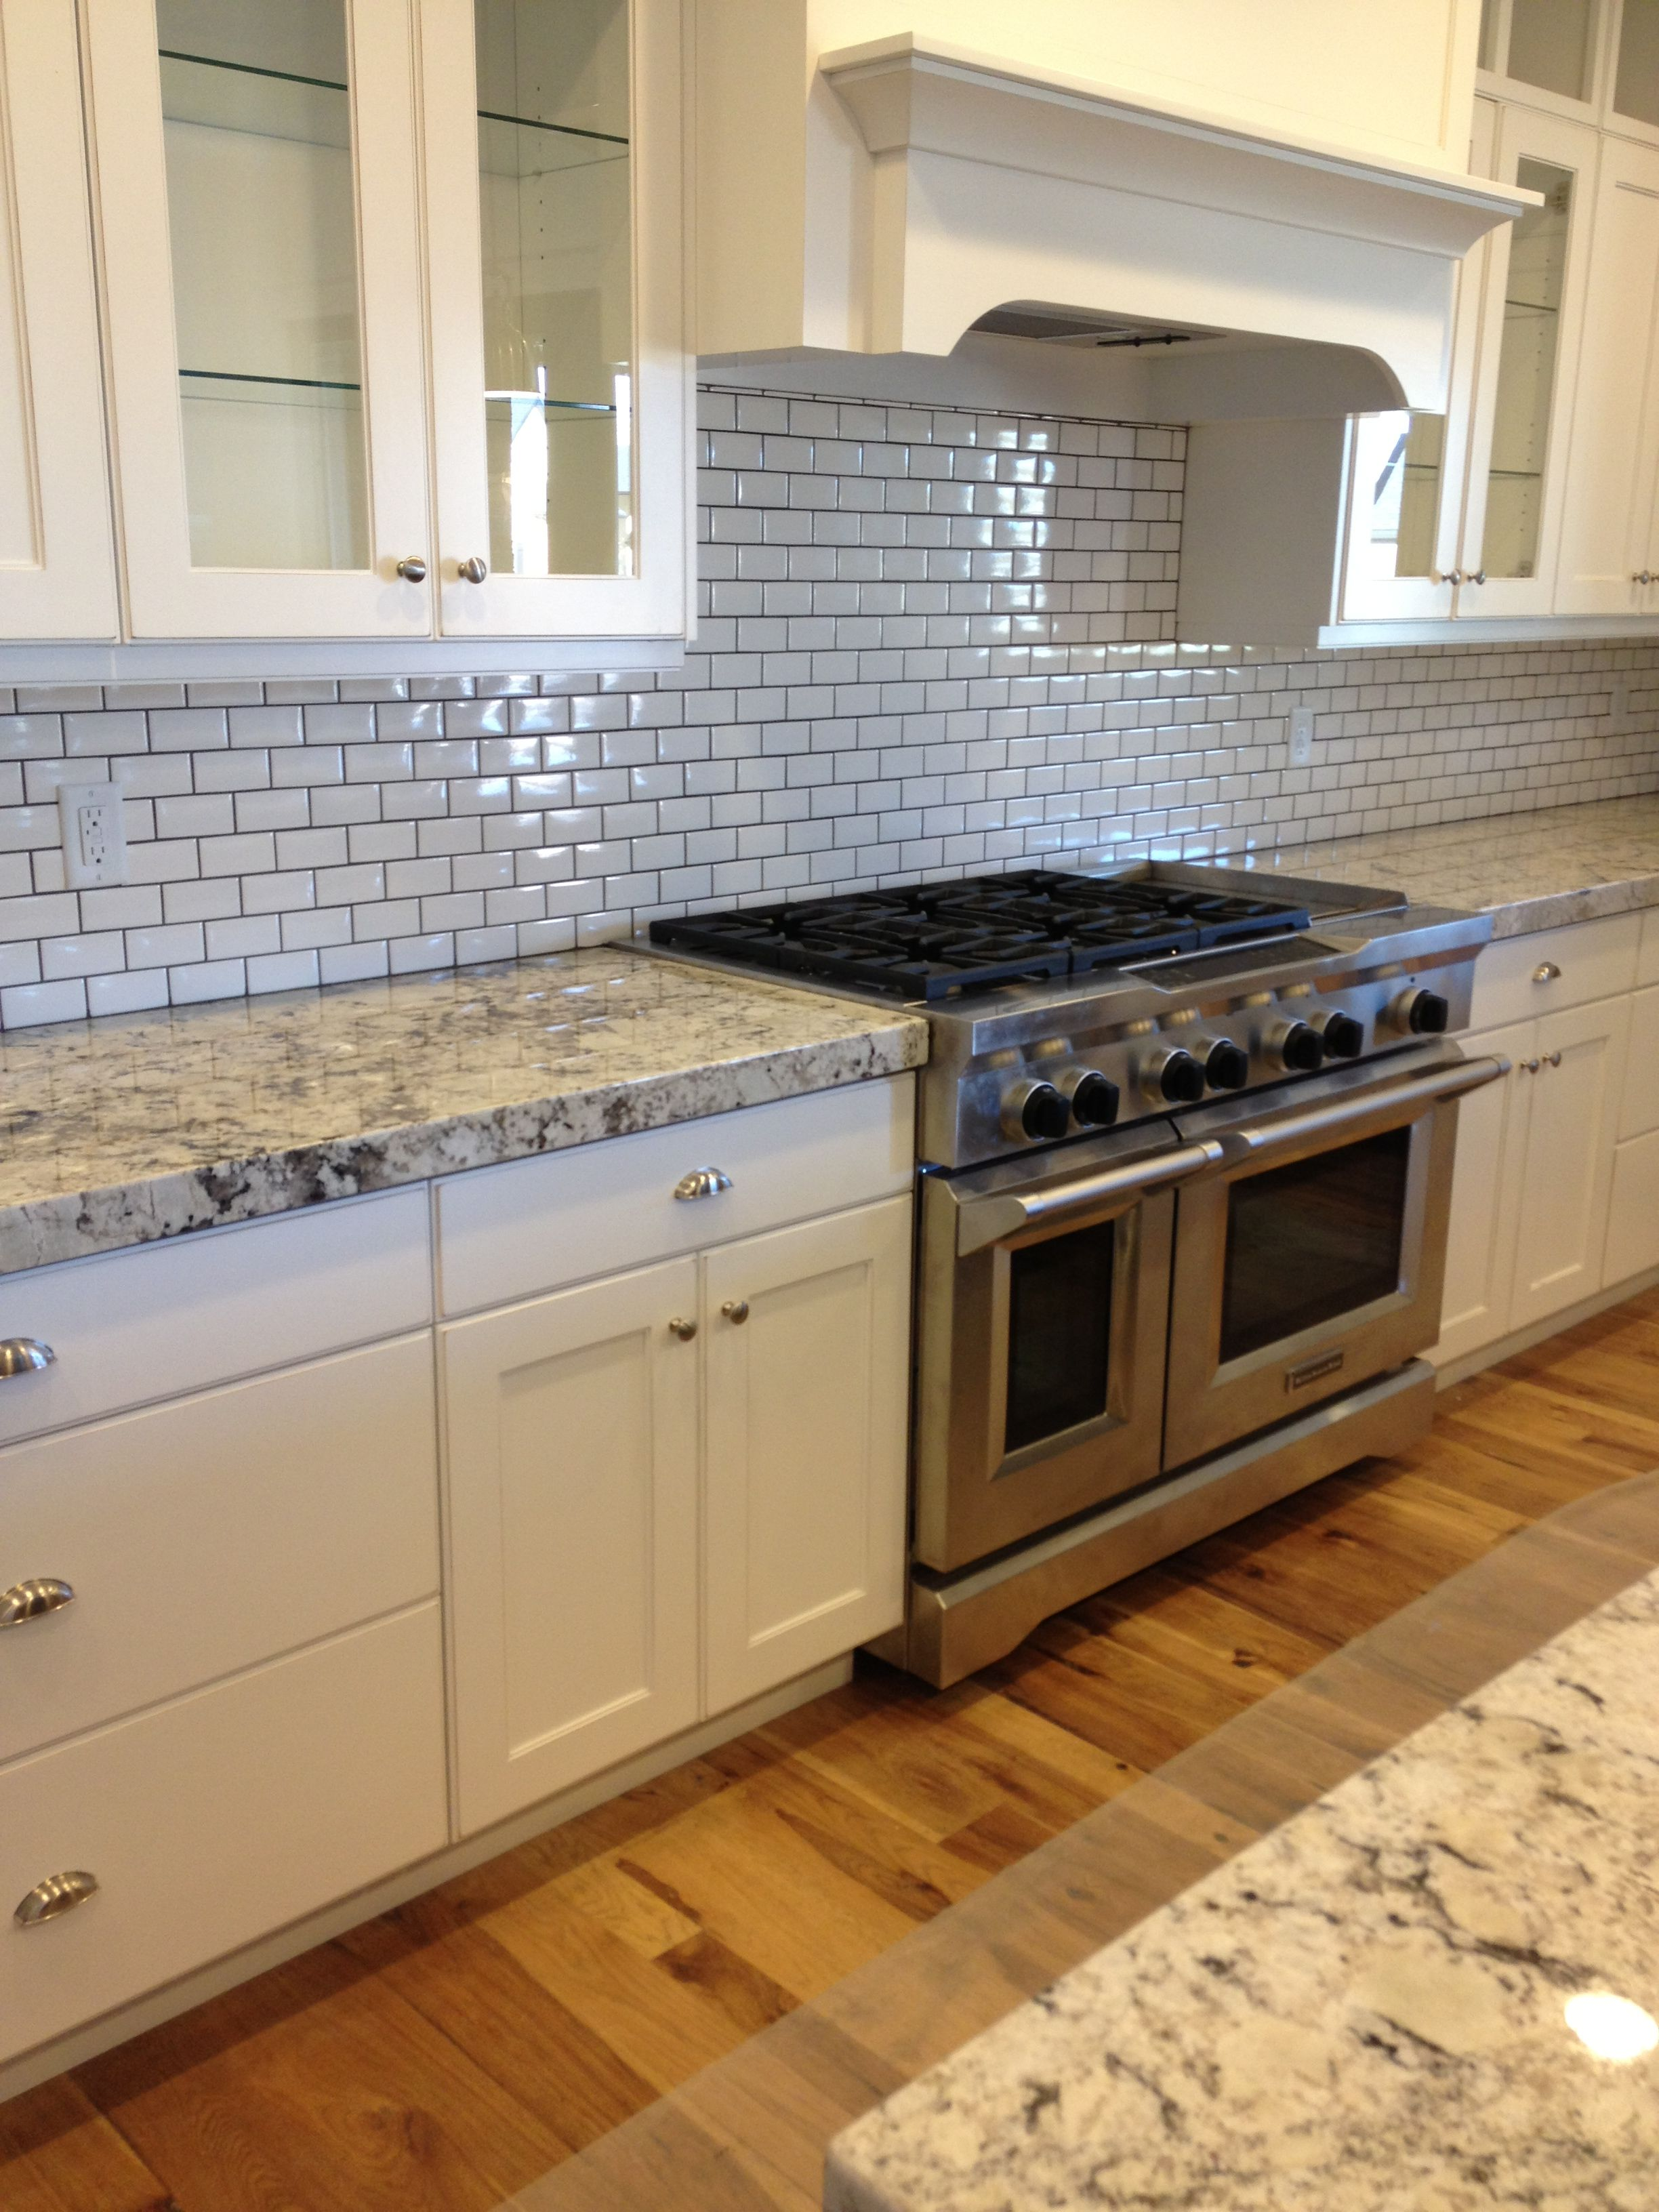 White Subway Tile Backsplash | Backsplash & Accent Pieces | Pinterest